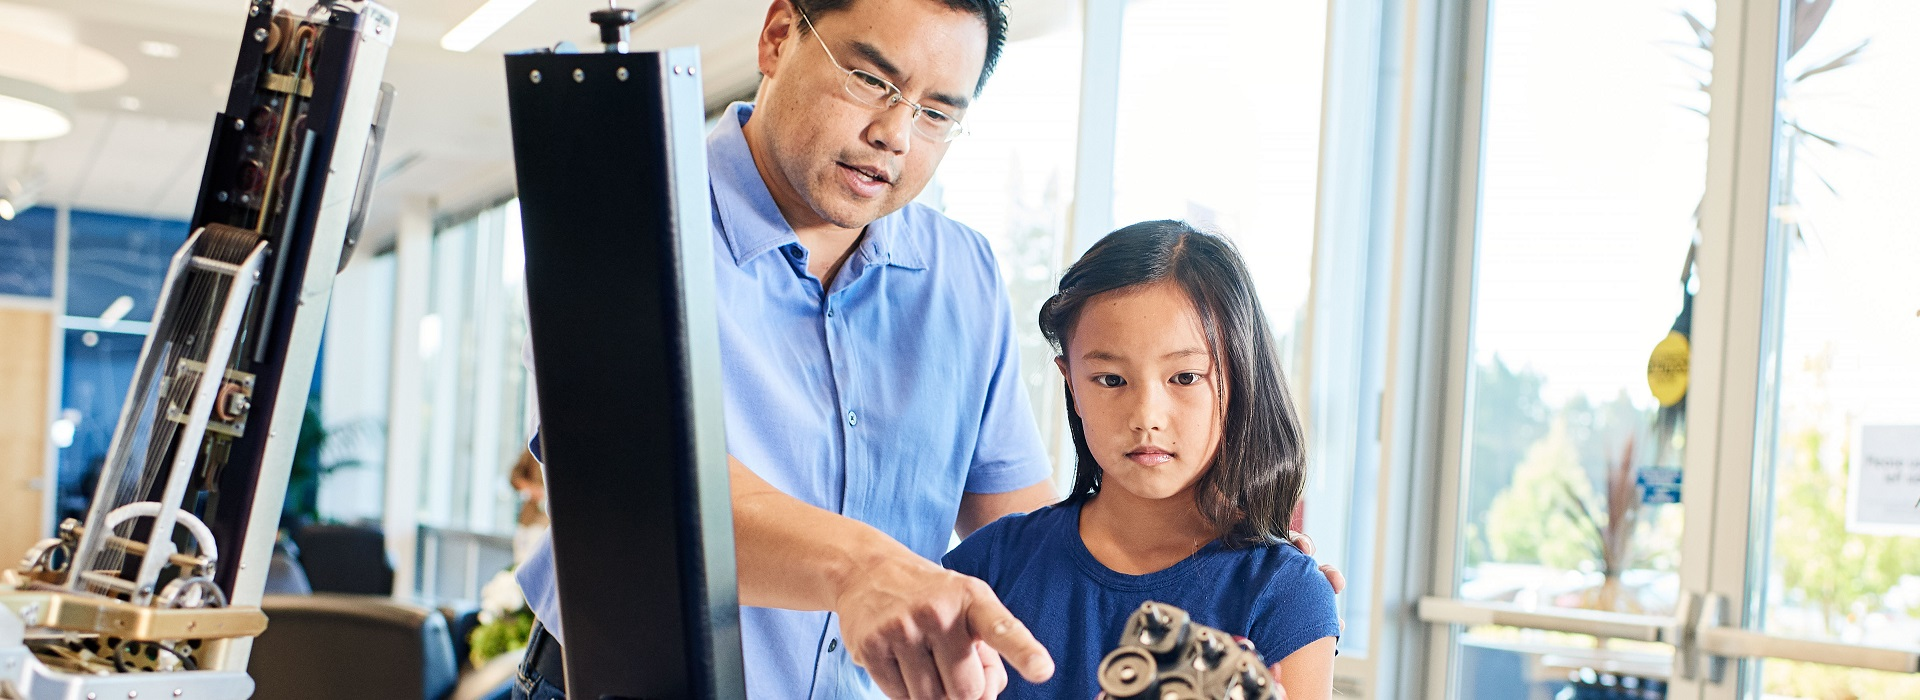 Intuitive senior designer employee with daughter on Bring Your Kids to Work Day